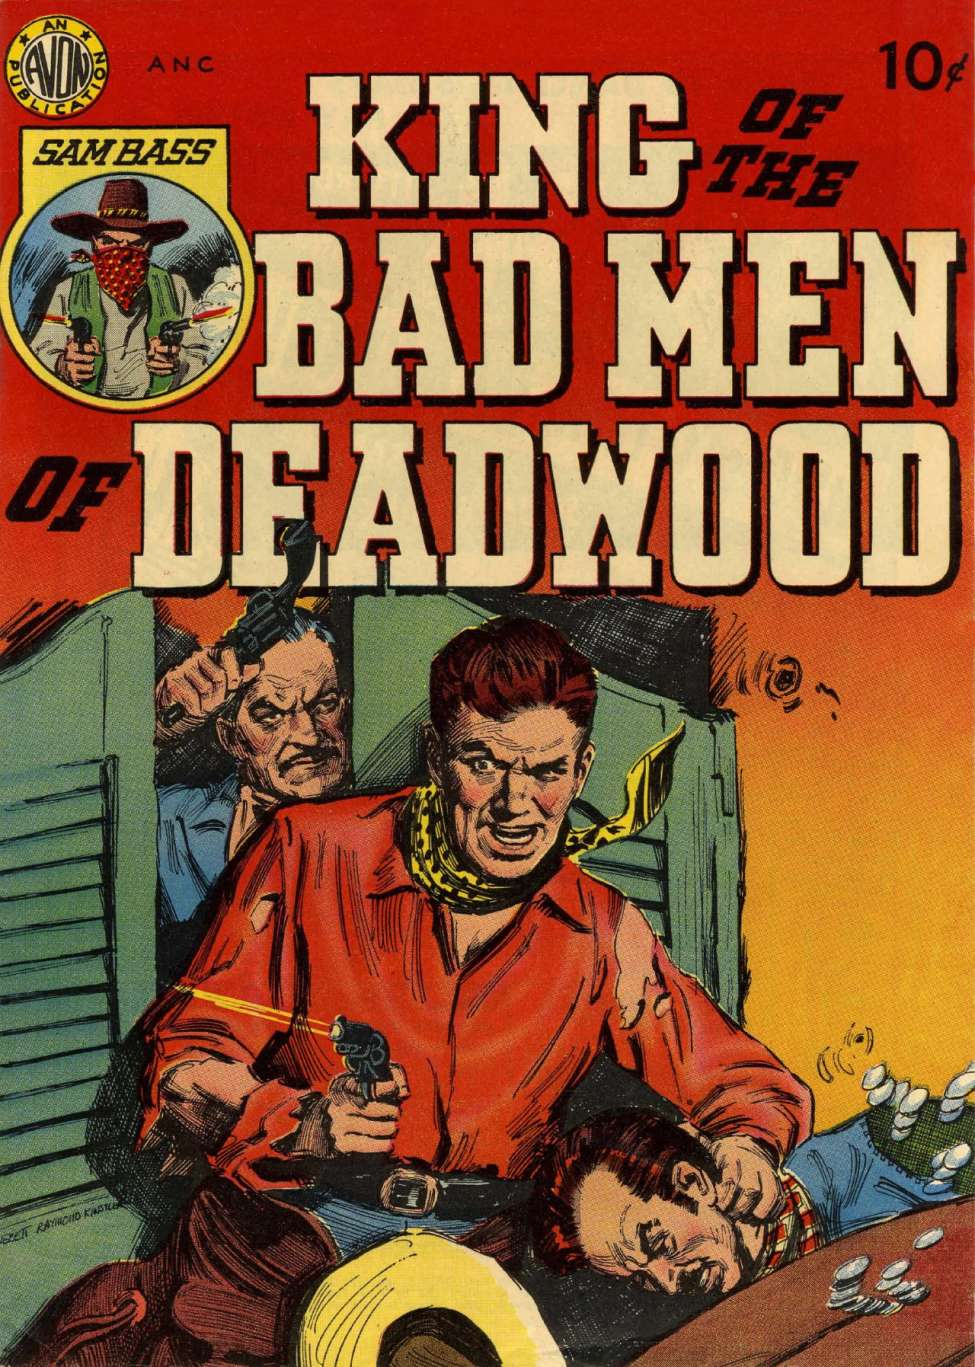 Comic Book Cover For King of the Badmen of Deadwood (nn) - Version 2